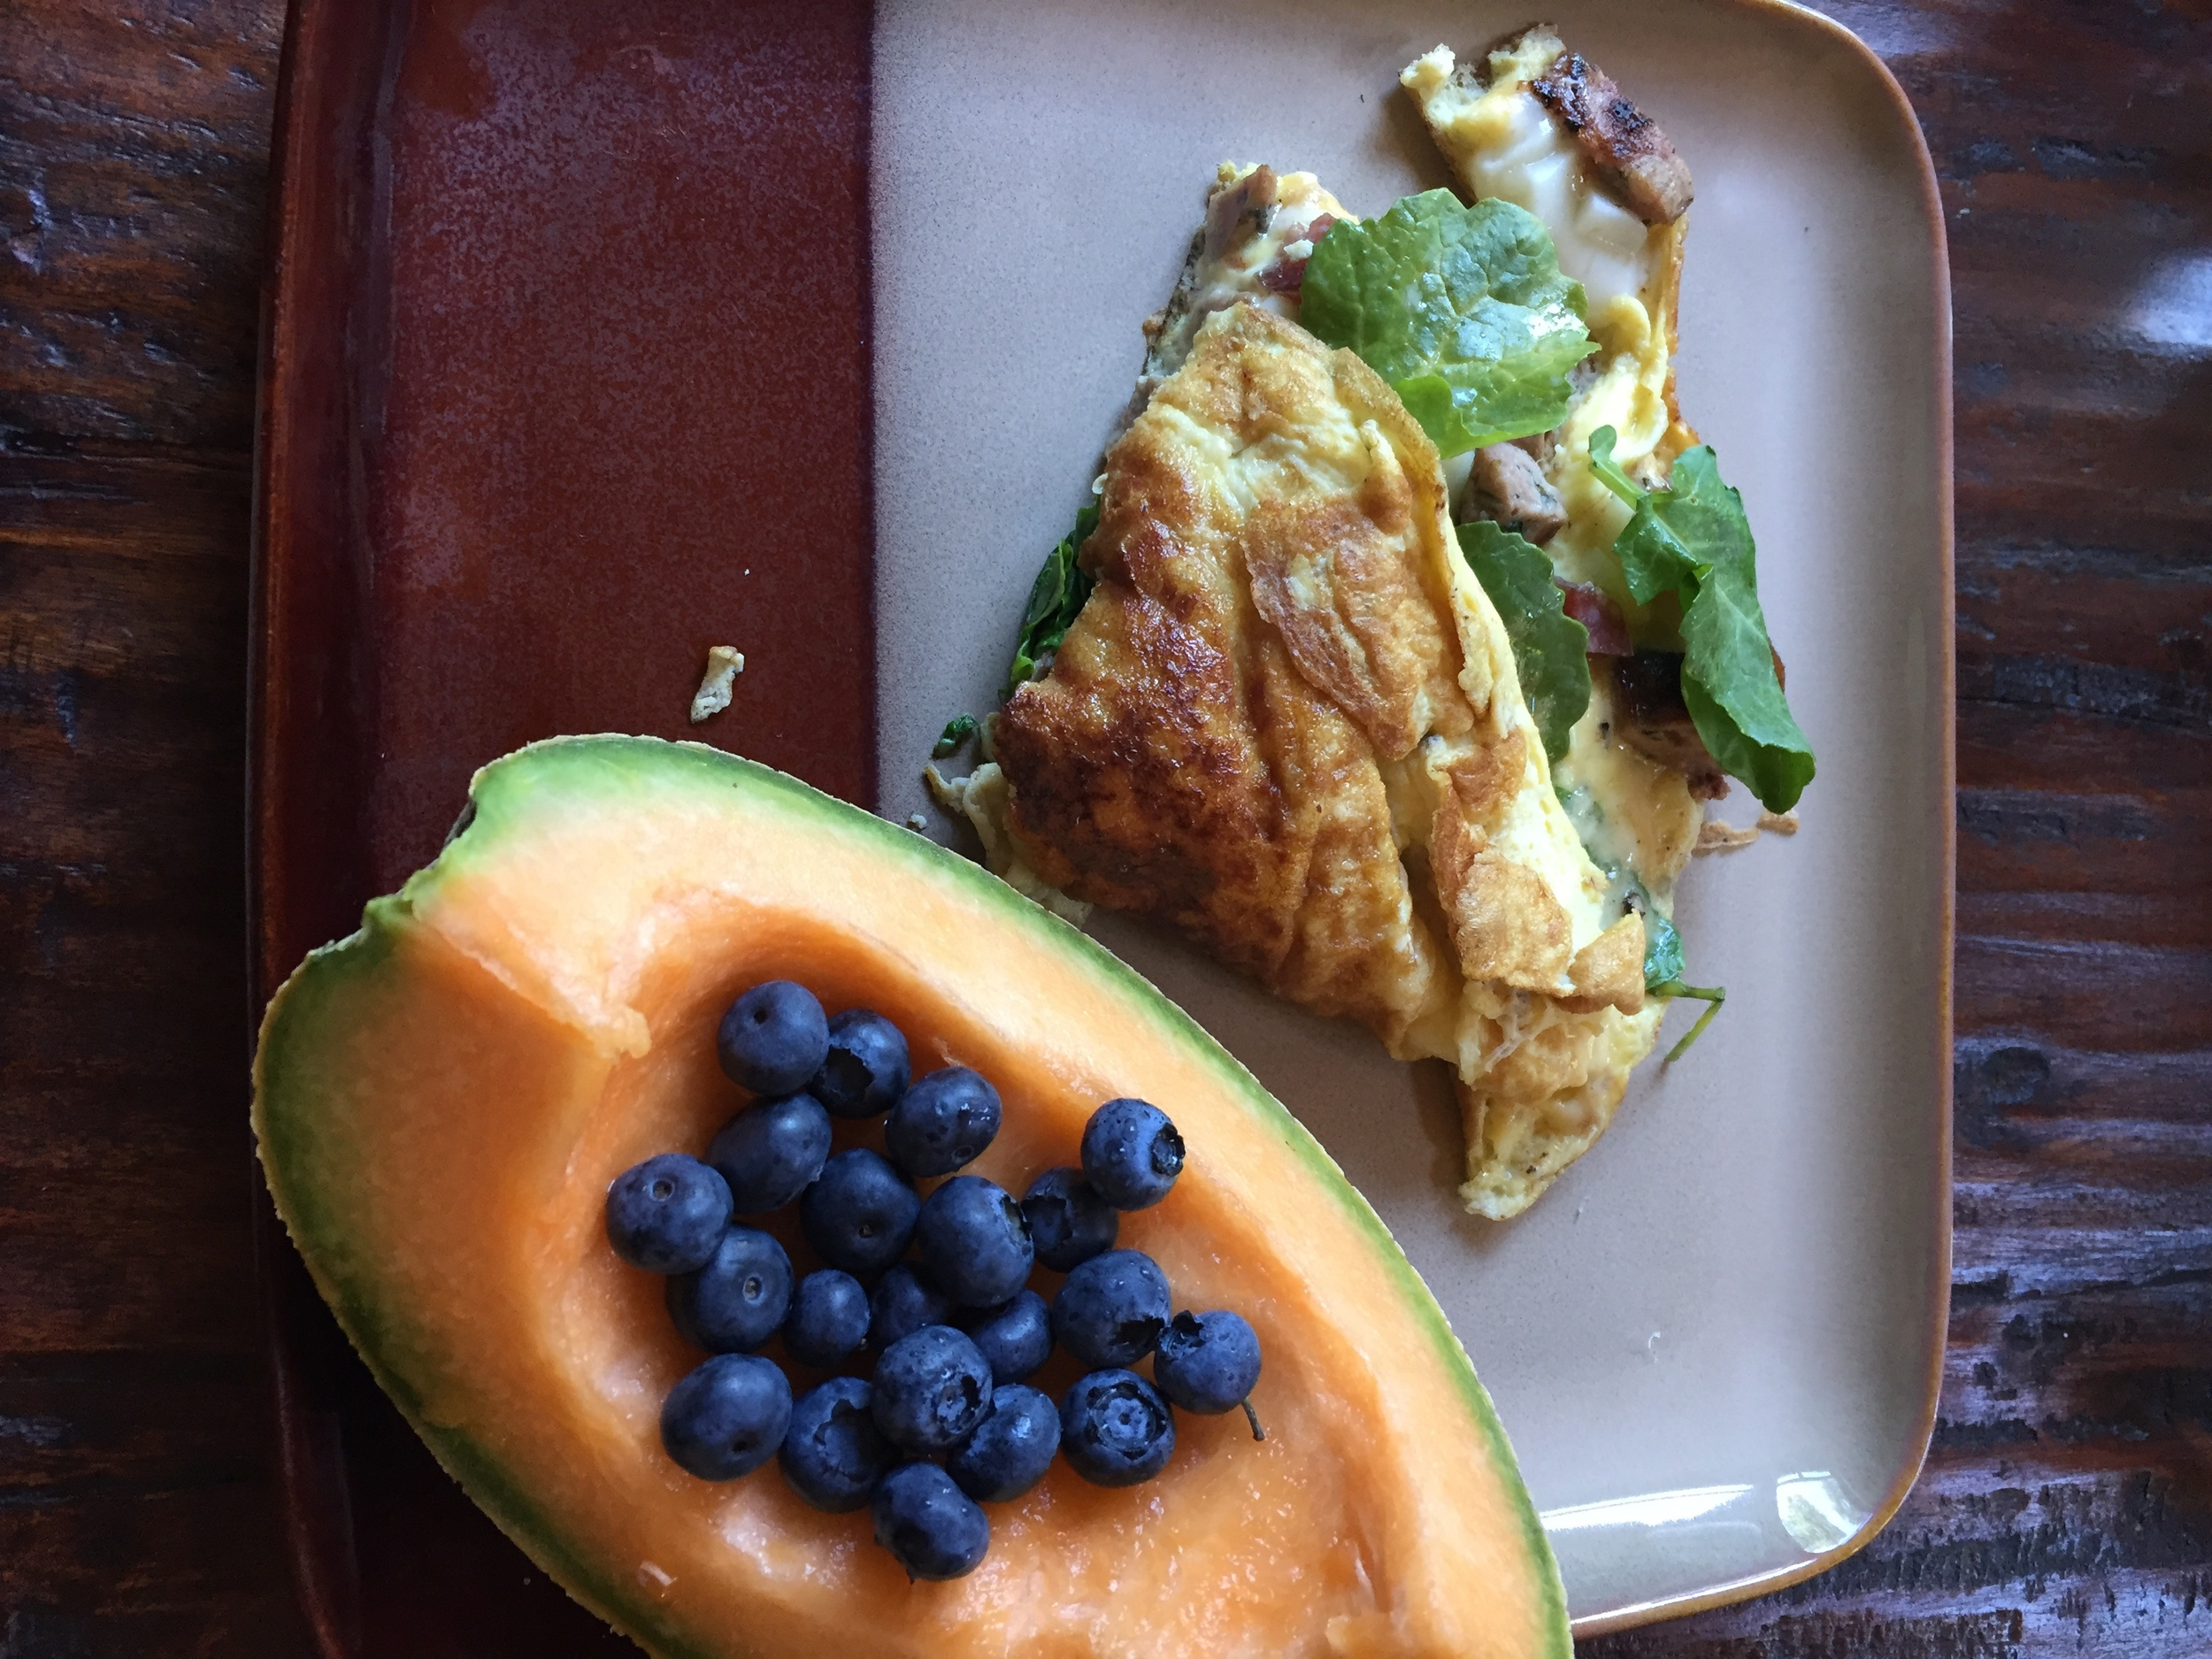 Swap those hash browns for fresh fruit with your next omelette. It's all about clean' livin', folks!